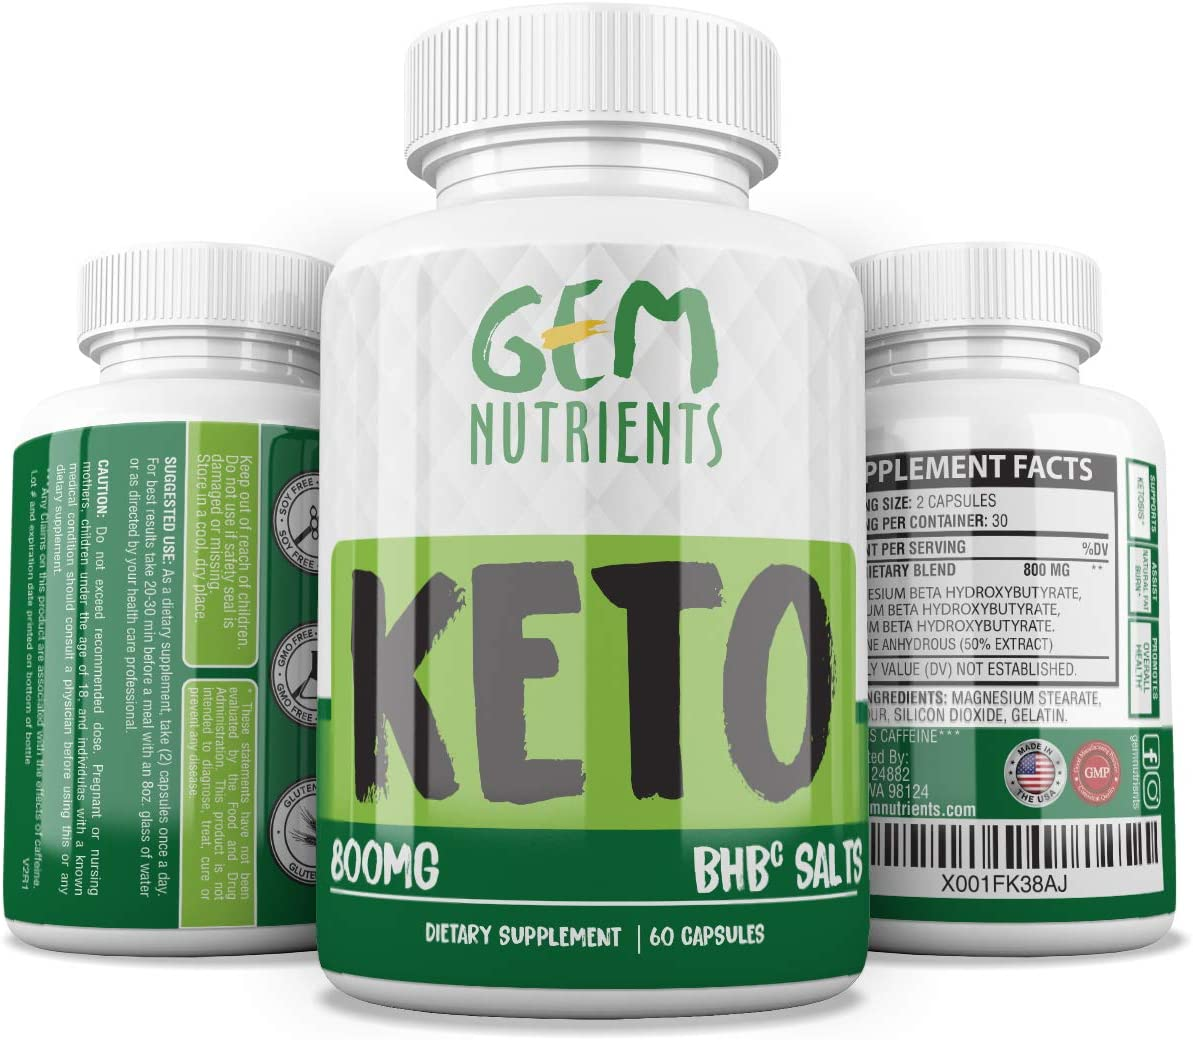 Advanced Instant Keto Diet Supplement – 800mg All-Natural BHBc Salts Keto Pills – GMP-Sealed, Non-GMO Product – Immune Booster, Mental Focus and for More Energy